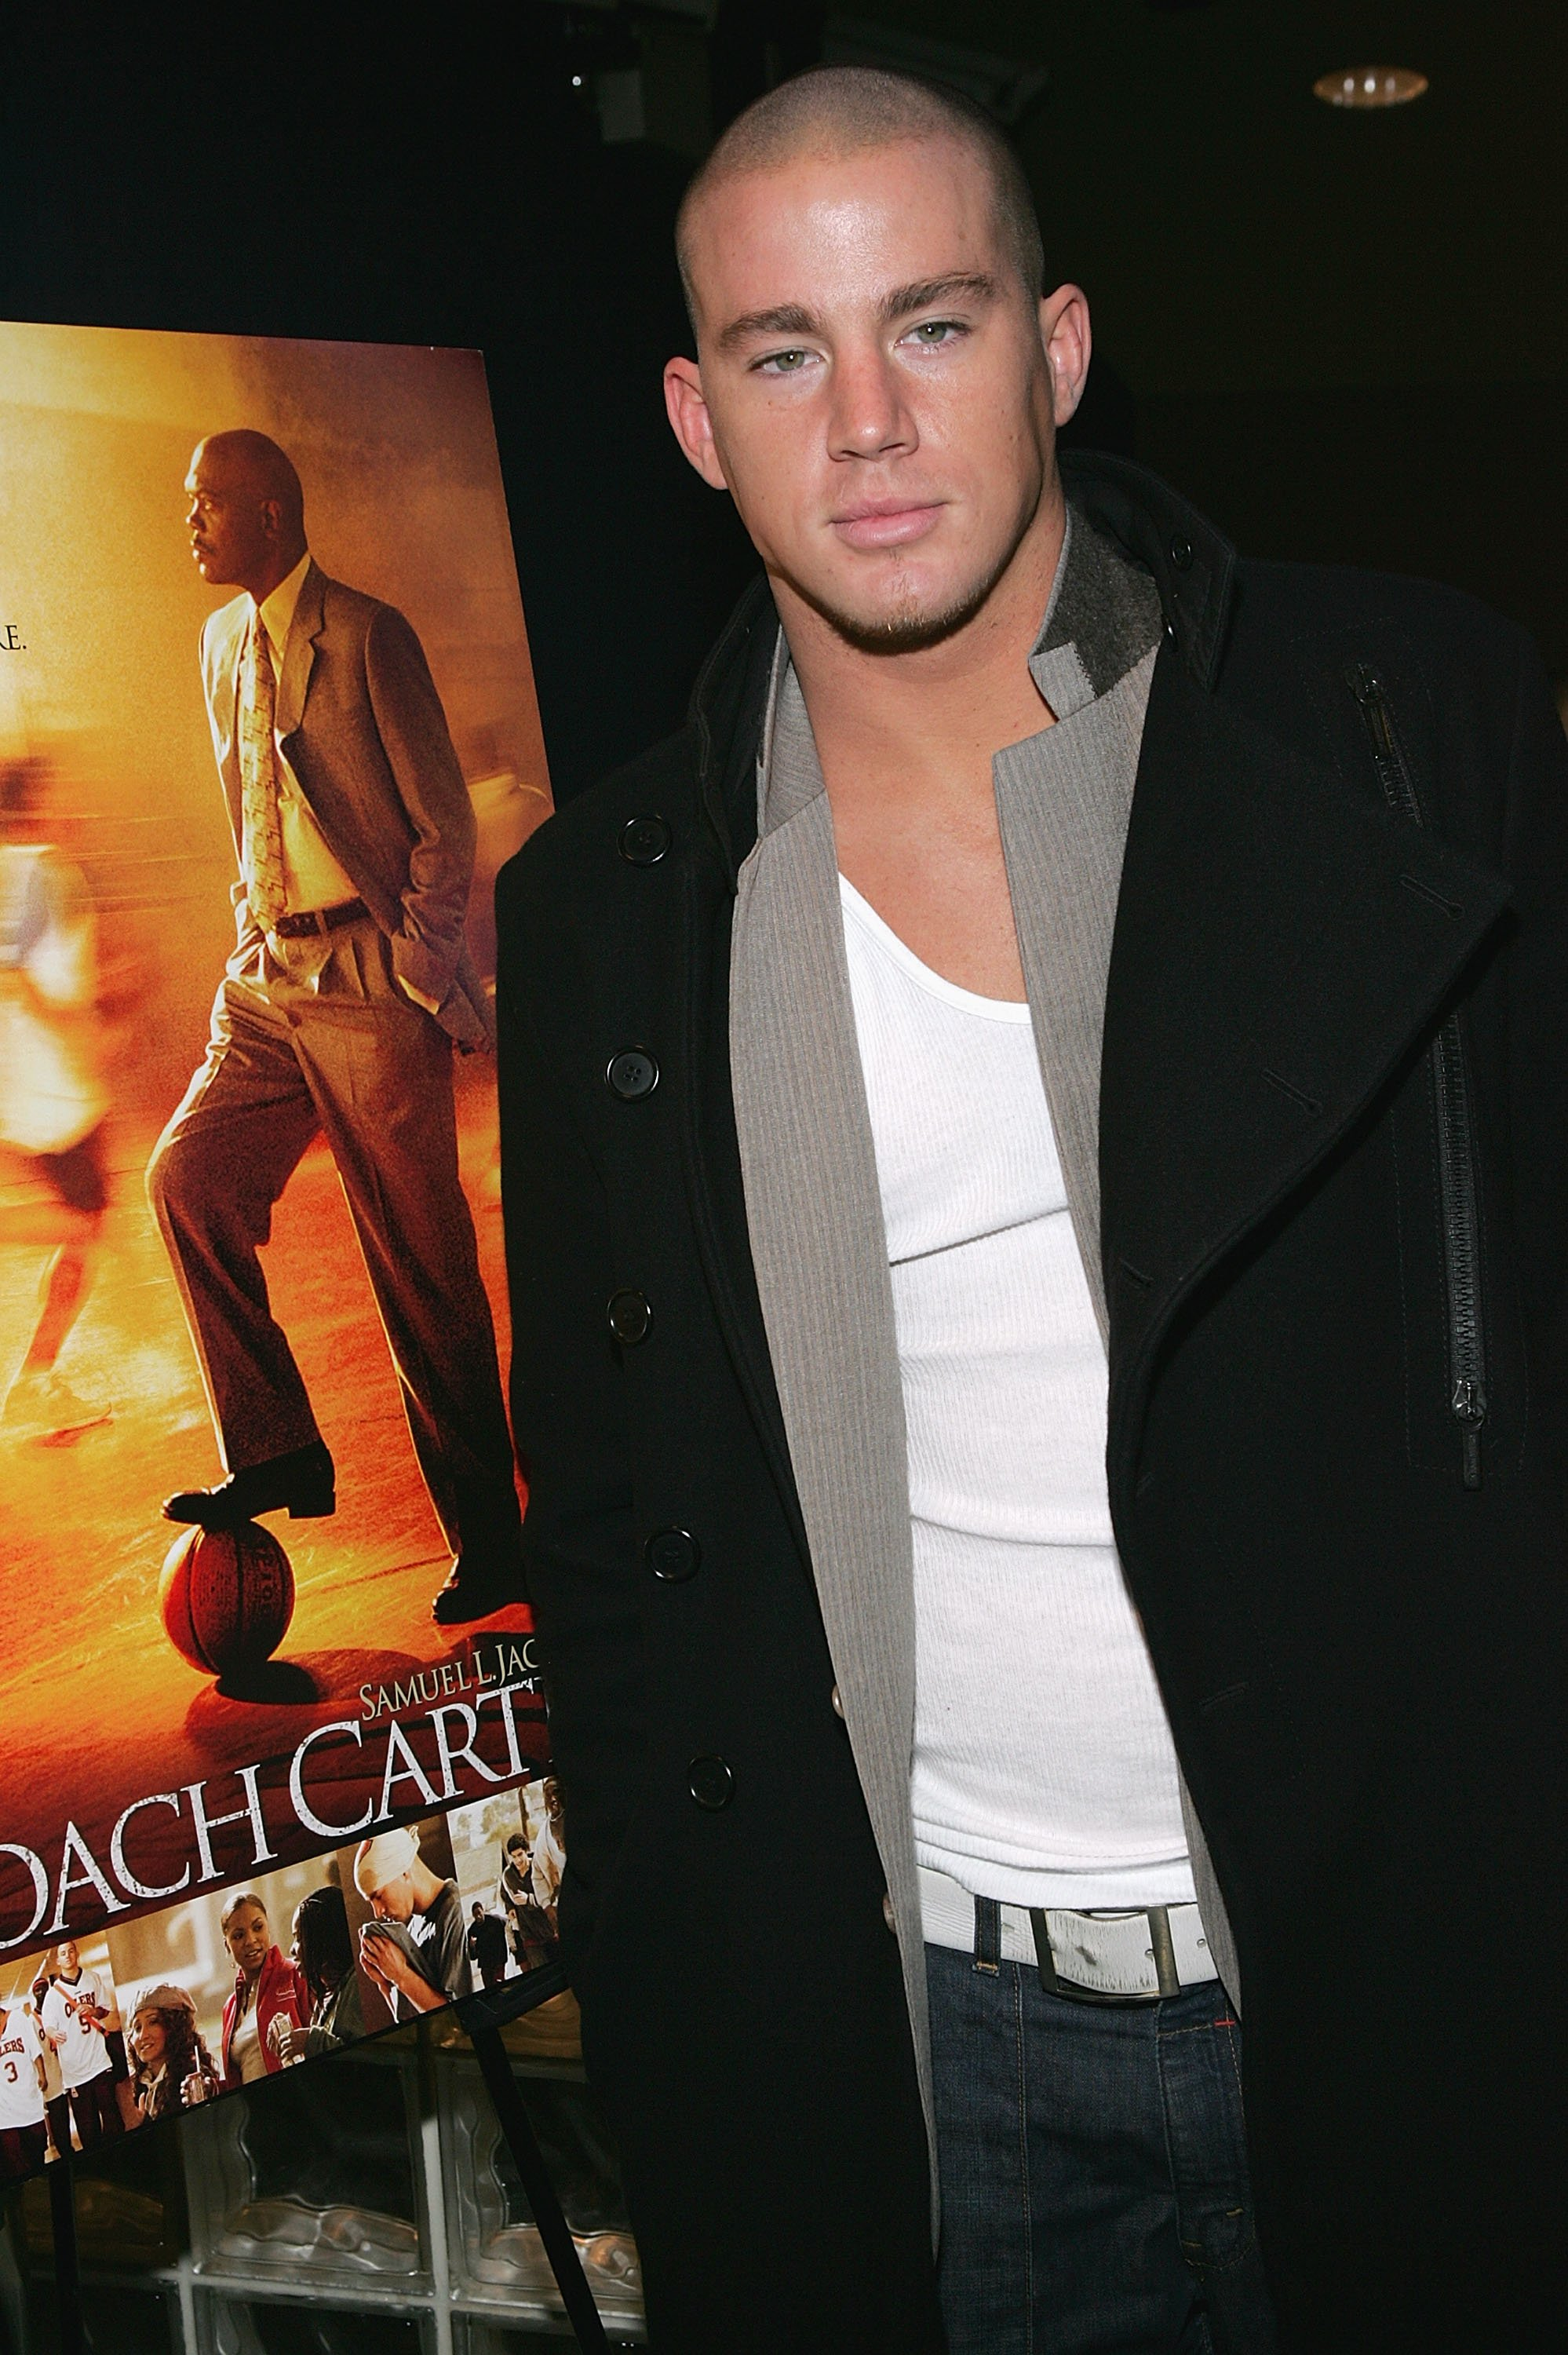 """Channing Tatum attends the screening of """"Coach Carter"""" in New York City on December 13, 2004 